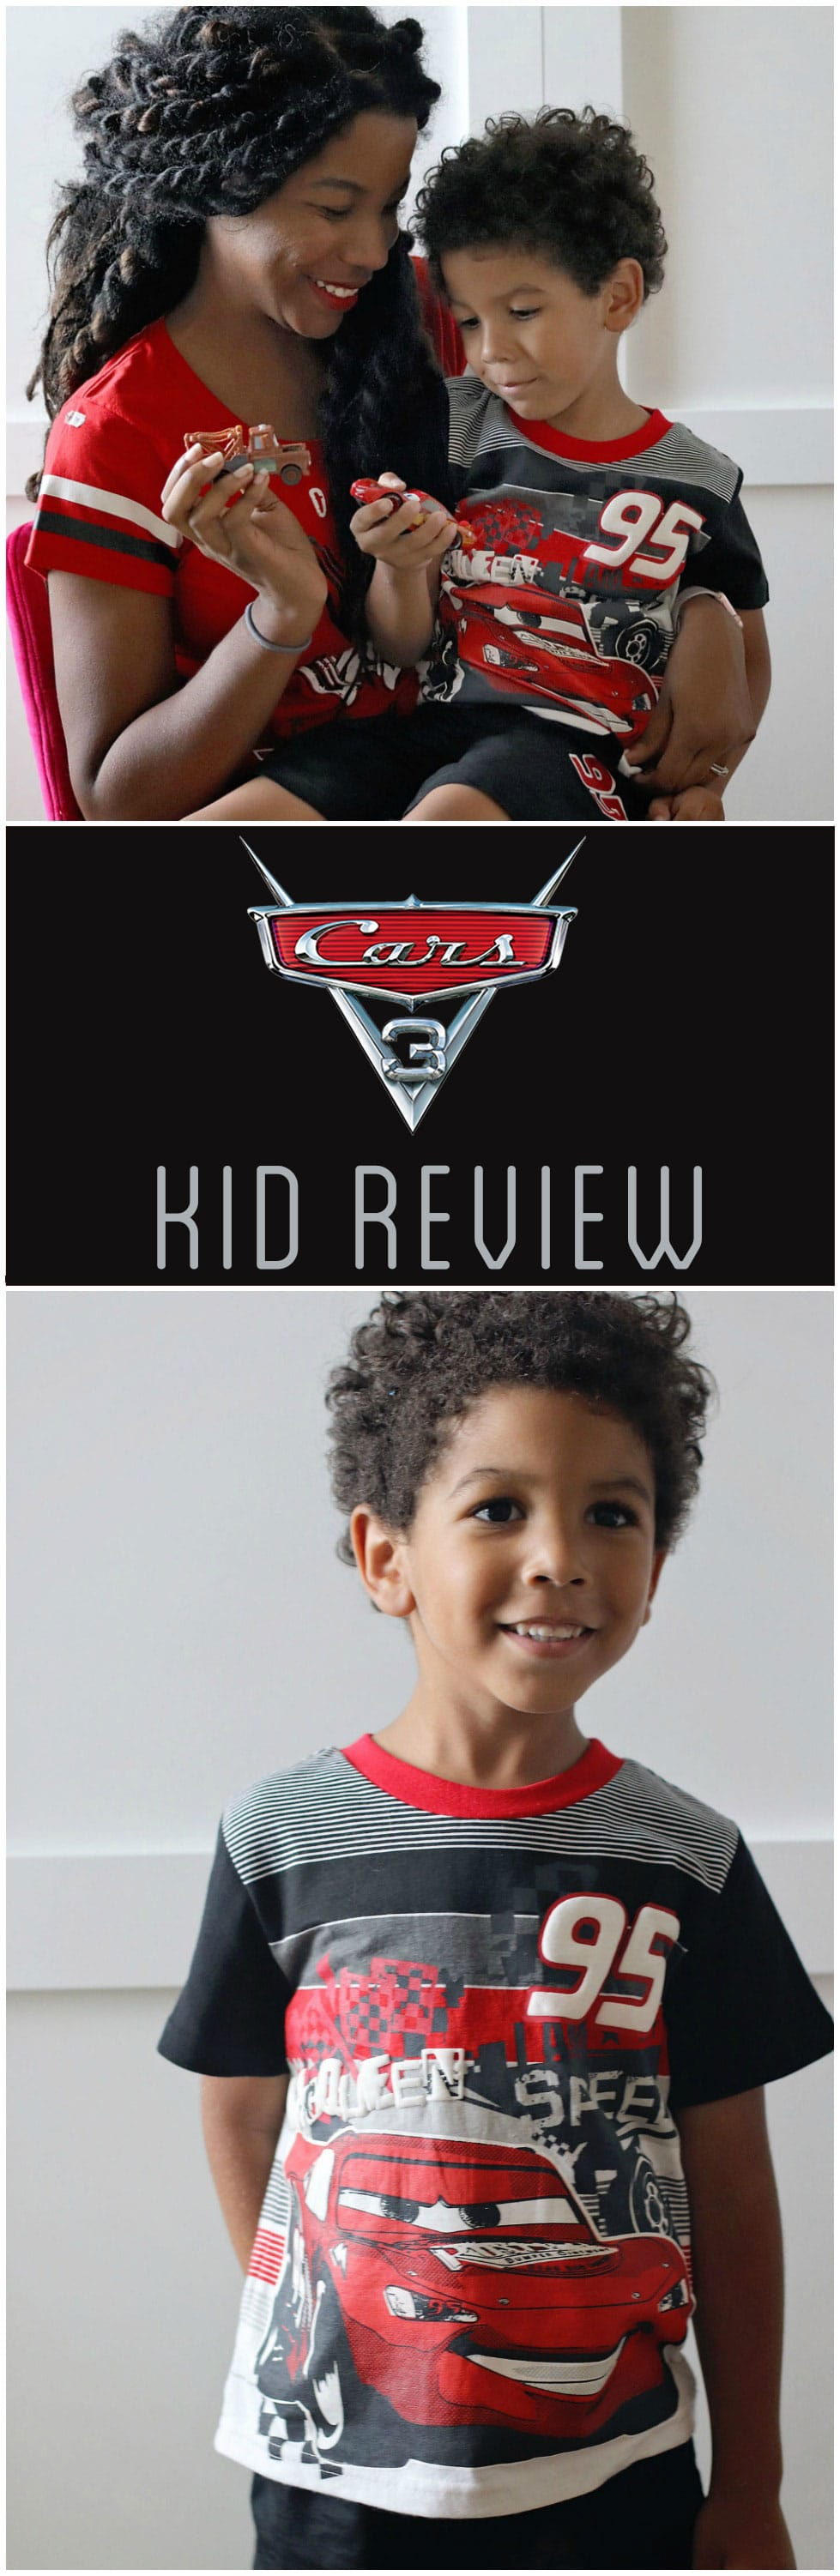 A 4-year-old's take on the new Pixar film. Cars 3 review.